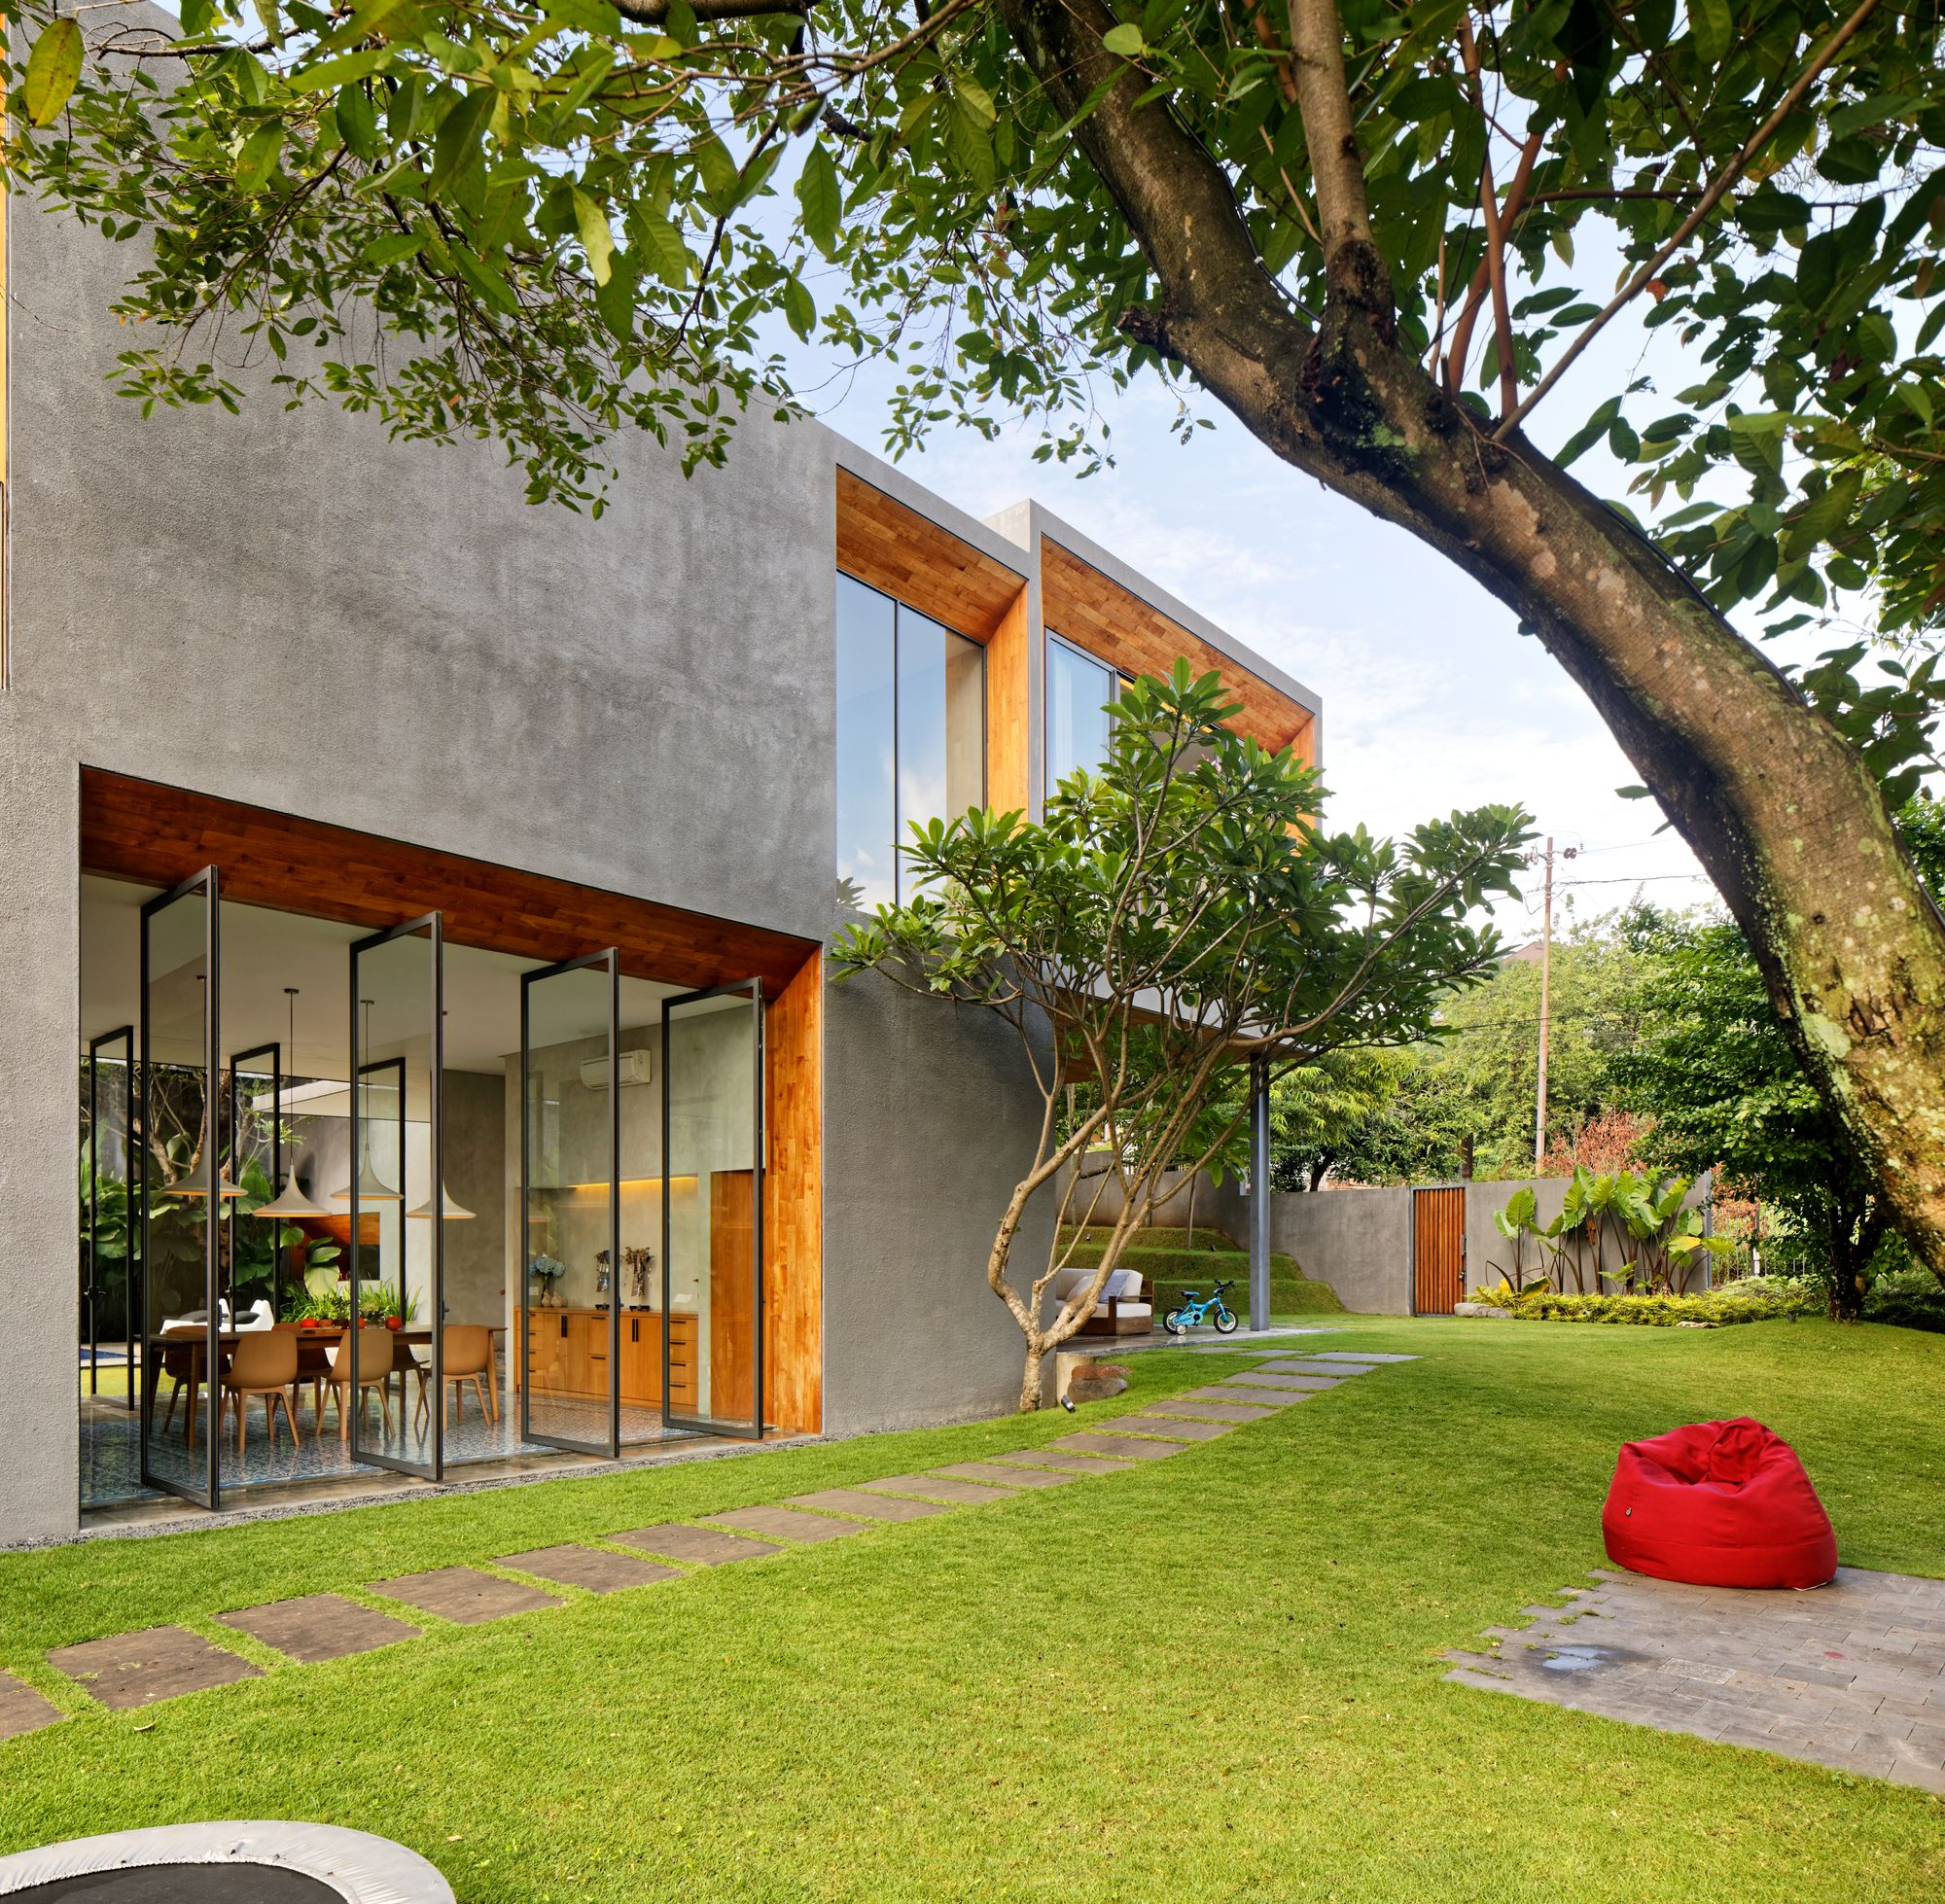 Contemporary Tropical House Tanga House: Gallery Of Inside Outside House / Tamara Wibowo Architects